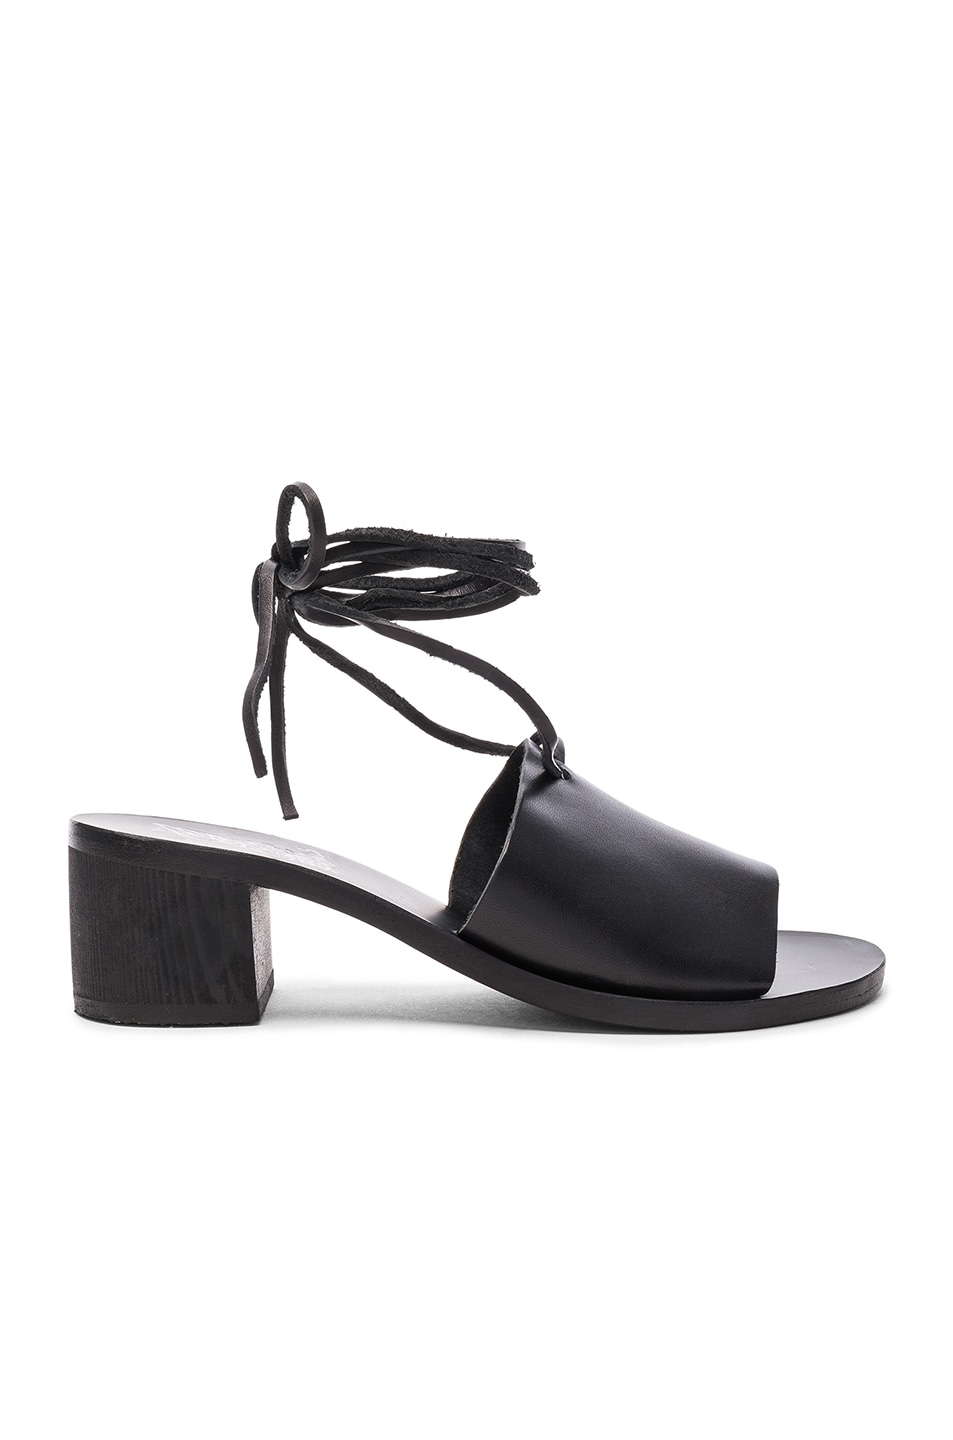 Image 1 of Ancient Greek Sandals Leather Christina Heels in Black